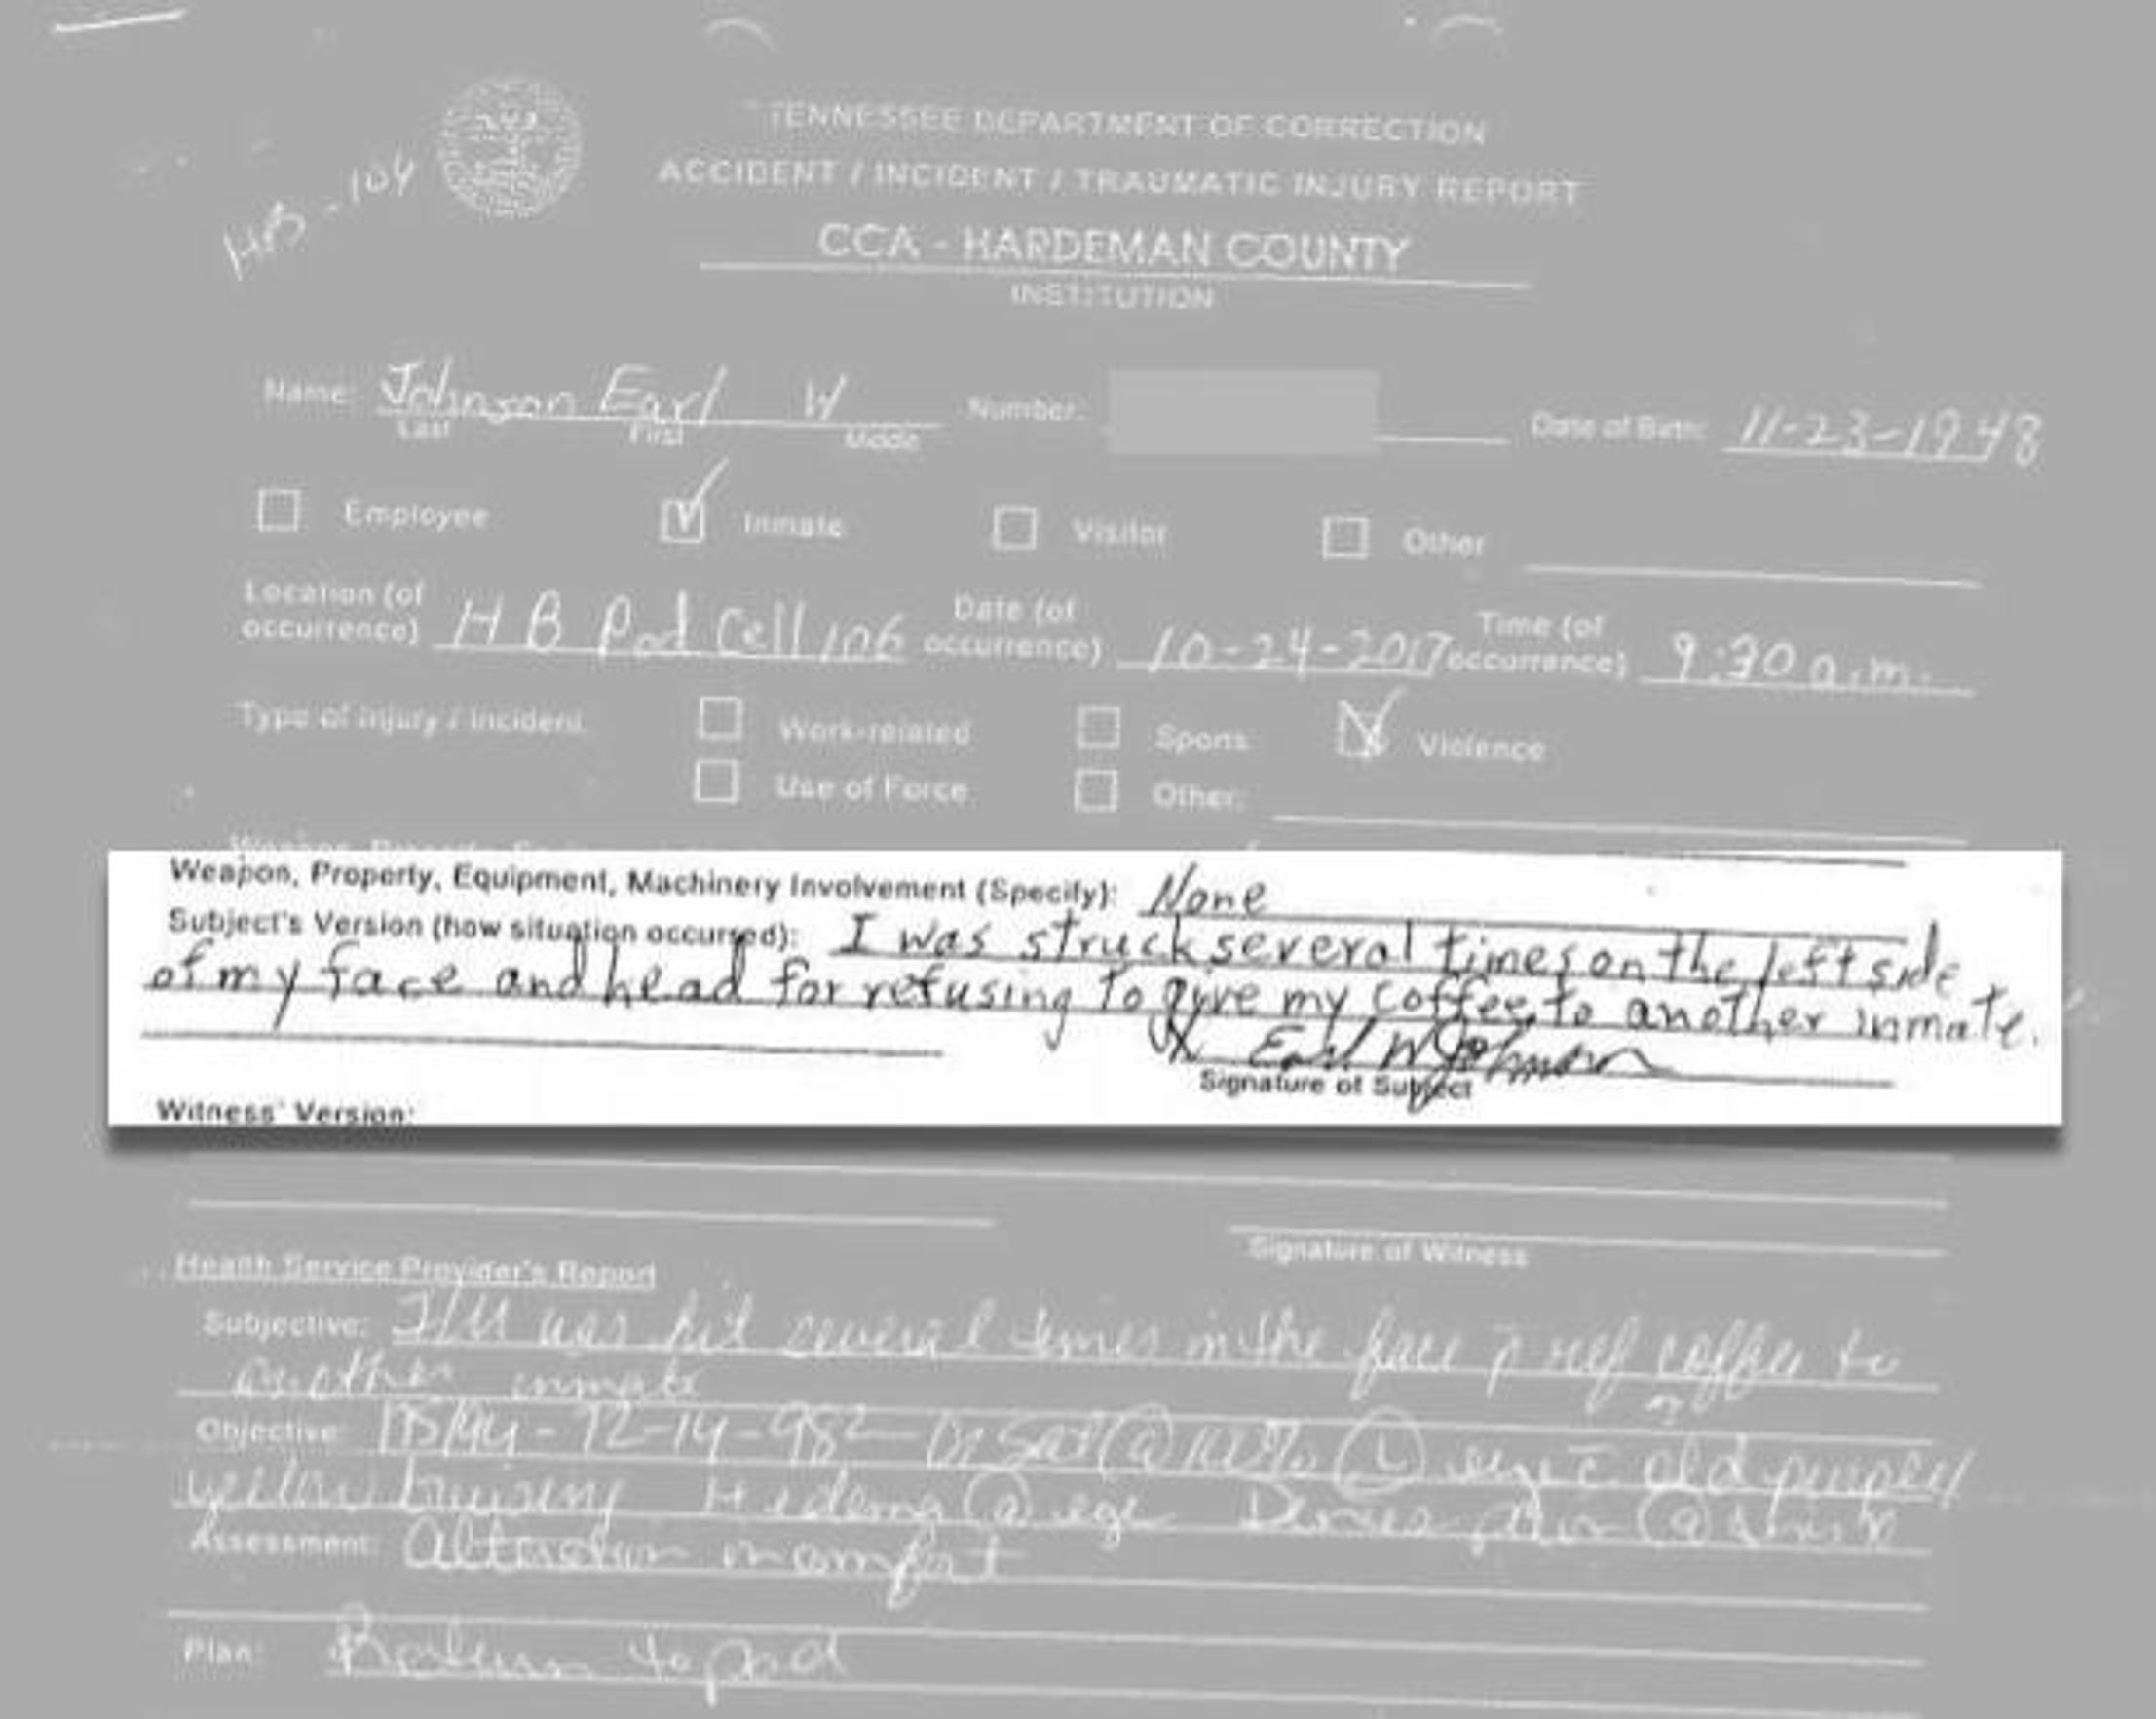 Earl W. Johnson wrote that he had been beaten by another inmate on an injury report form at Hardeman County Correctional Facility's medical facility just a few days before he died.